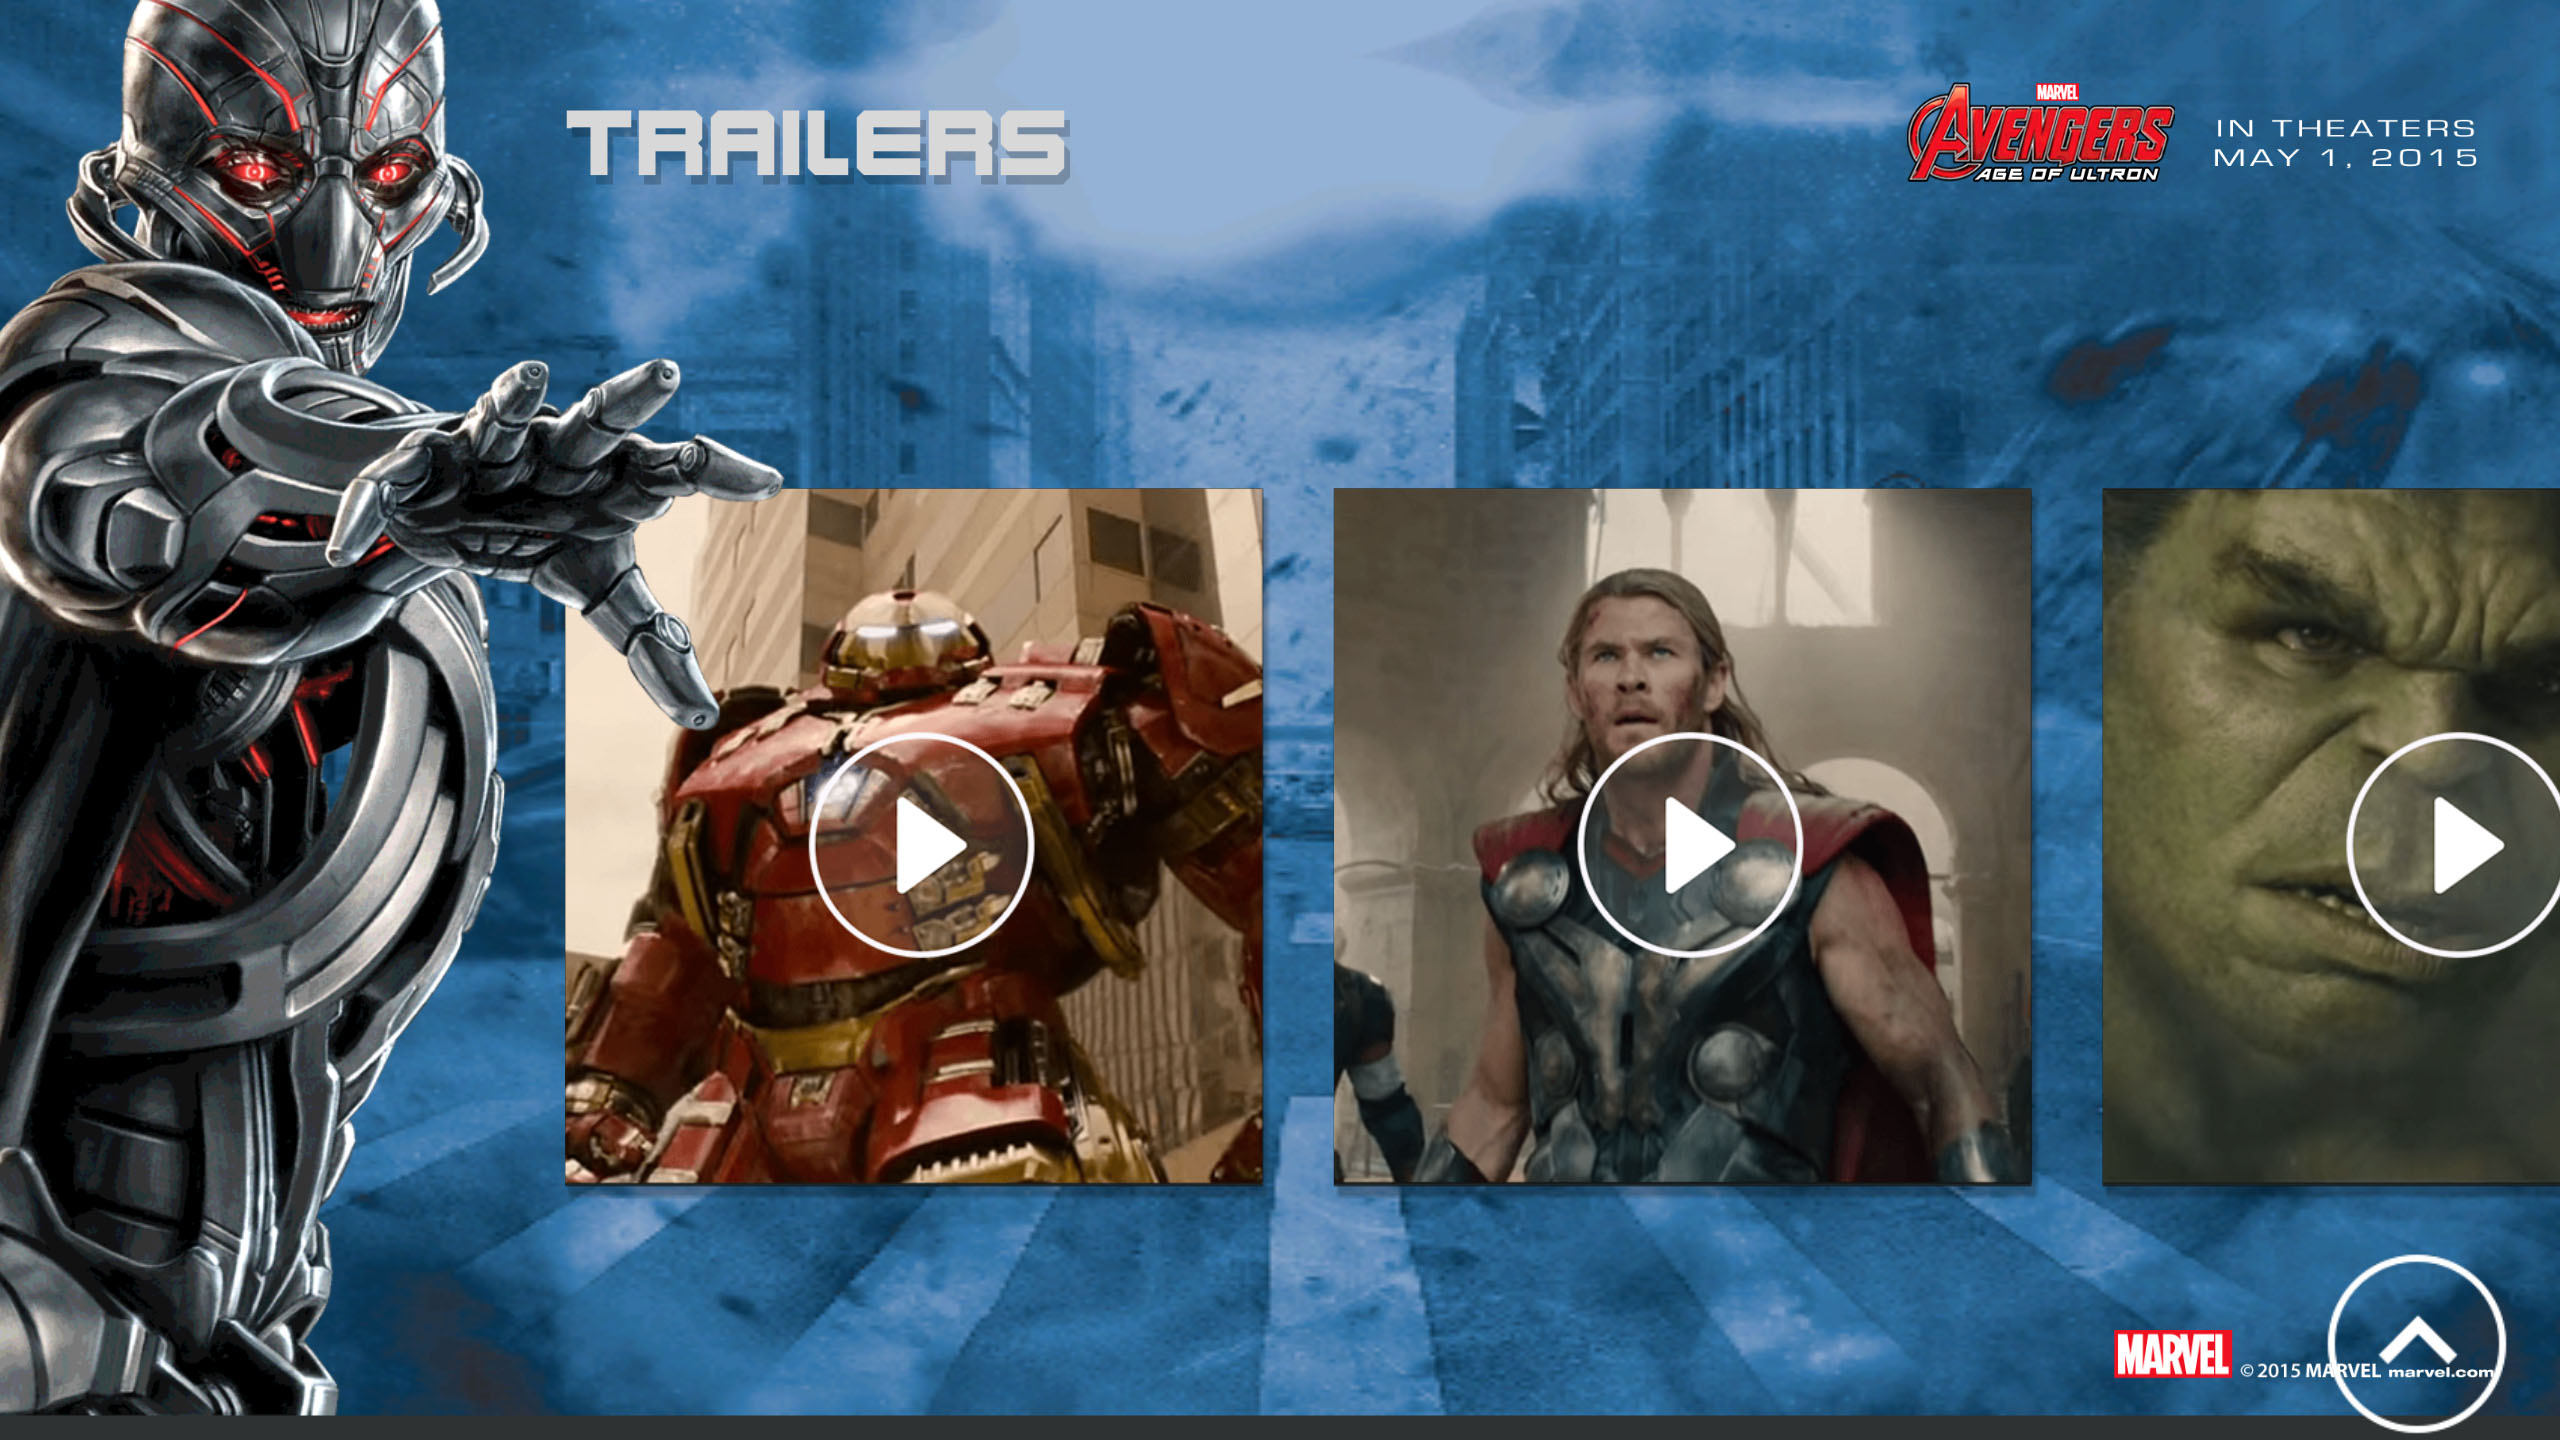 MARVEL's The Avengers - Age of Ultron movie trailers #AvengersUnite